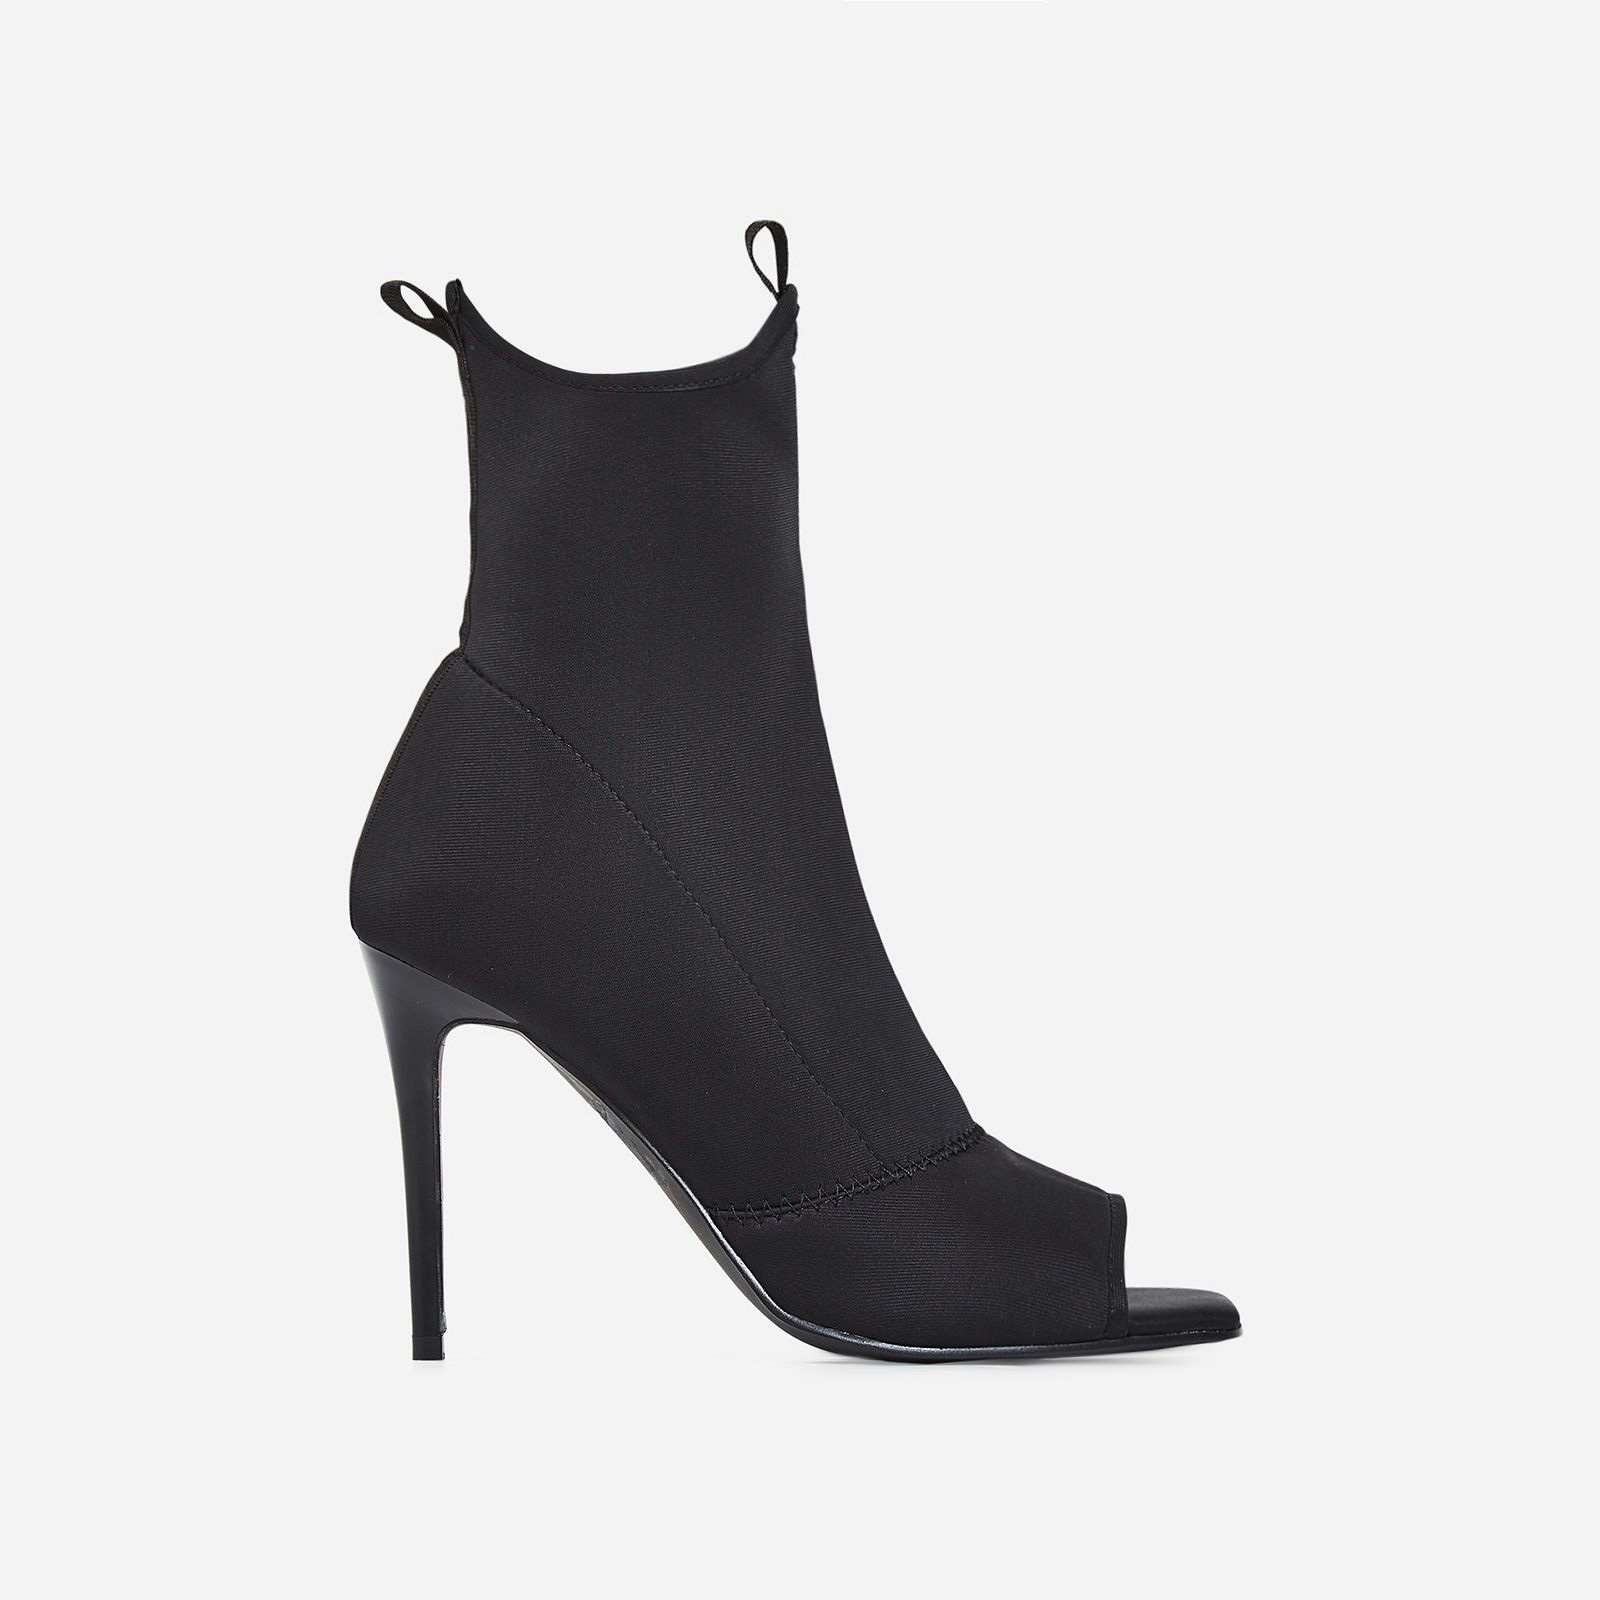 Carter Peep Toe Ankle Sock Boot In Black Lycra